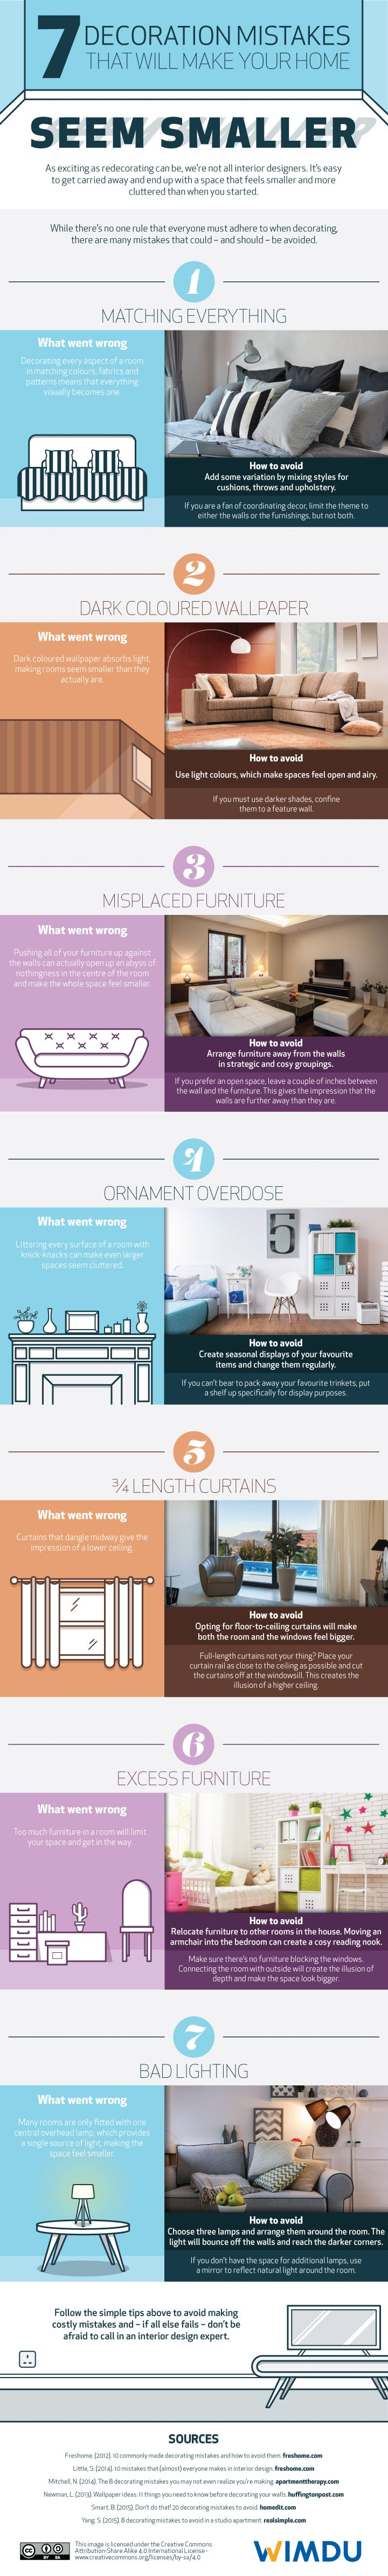 118 best images about home staging and decorating your home on